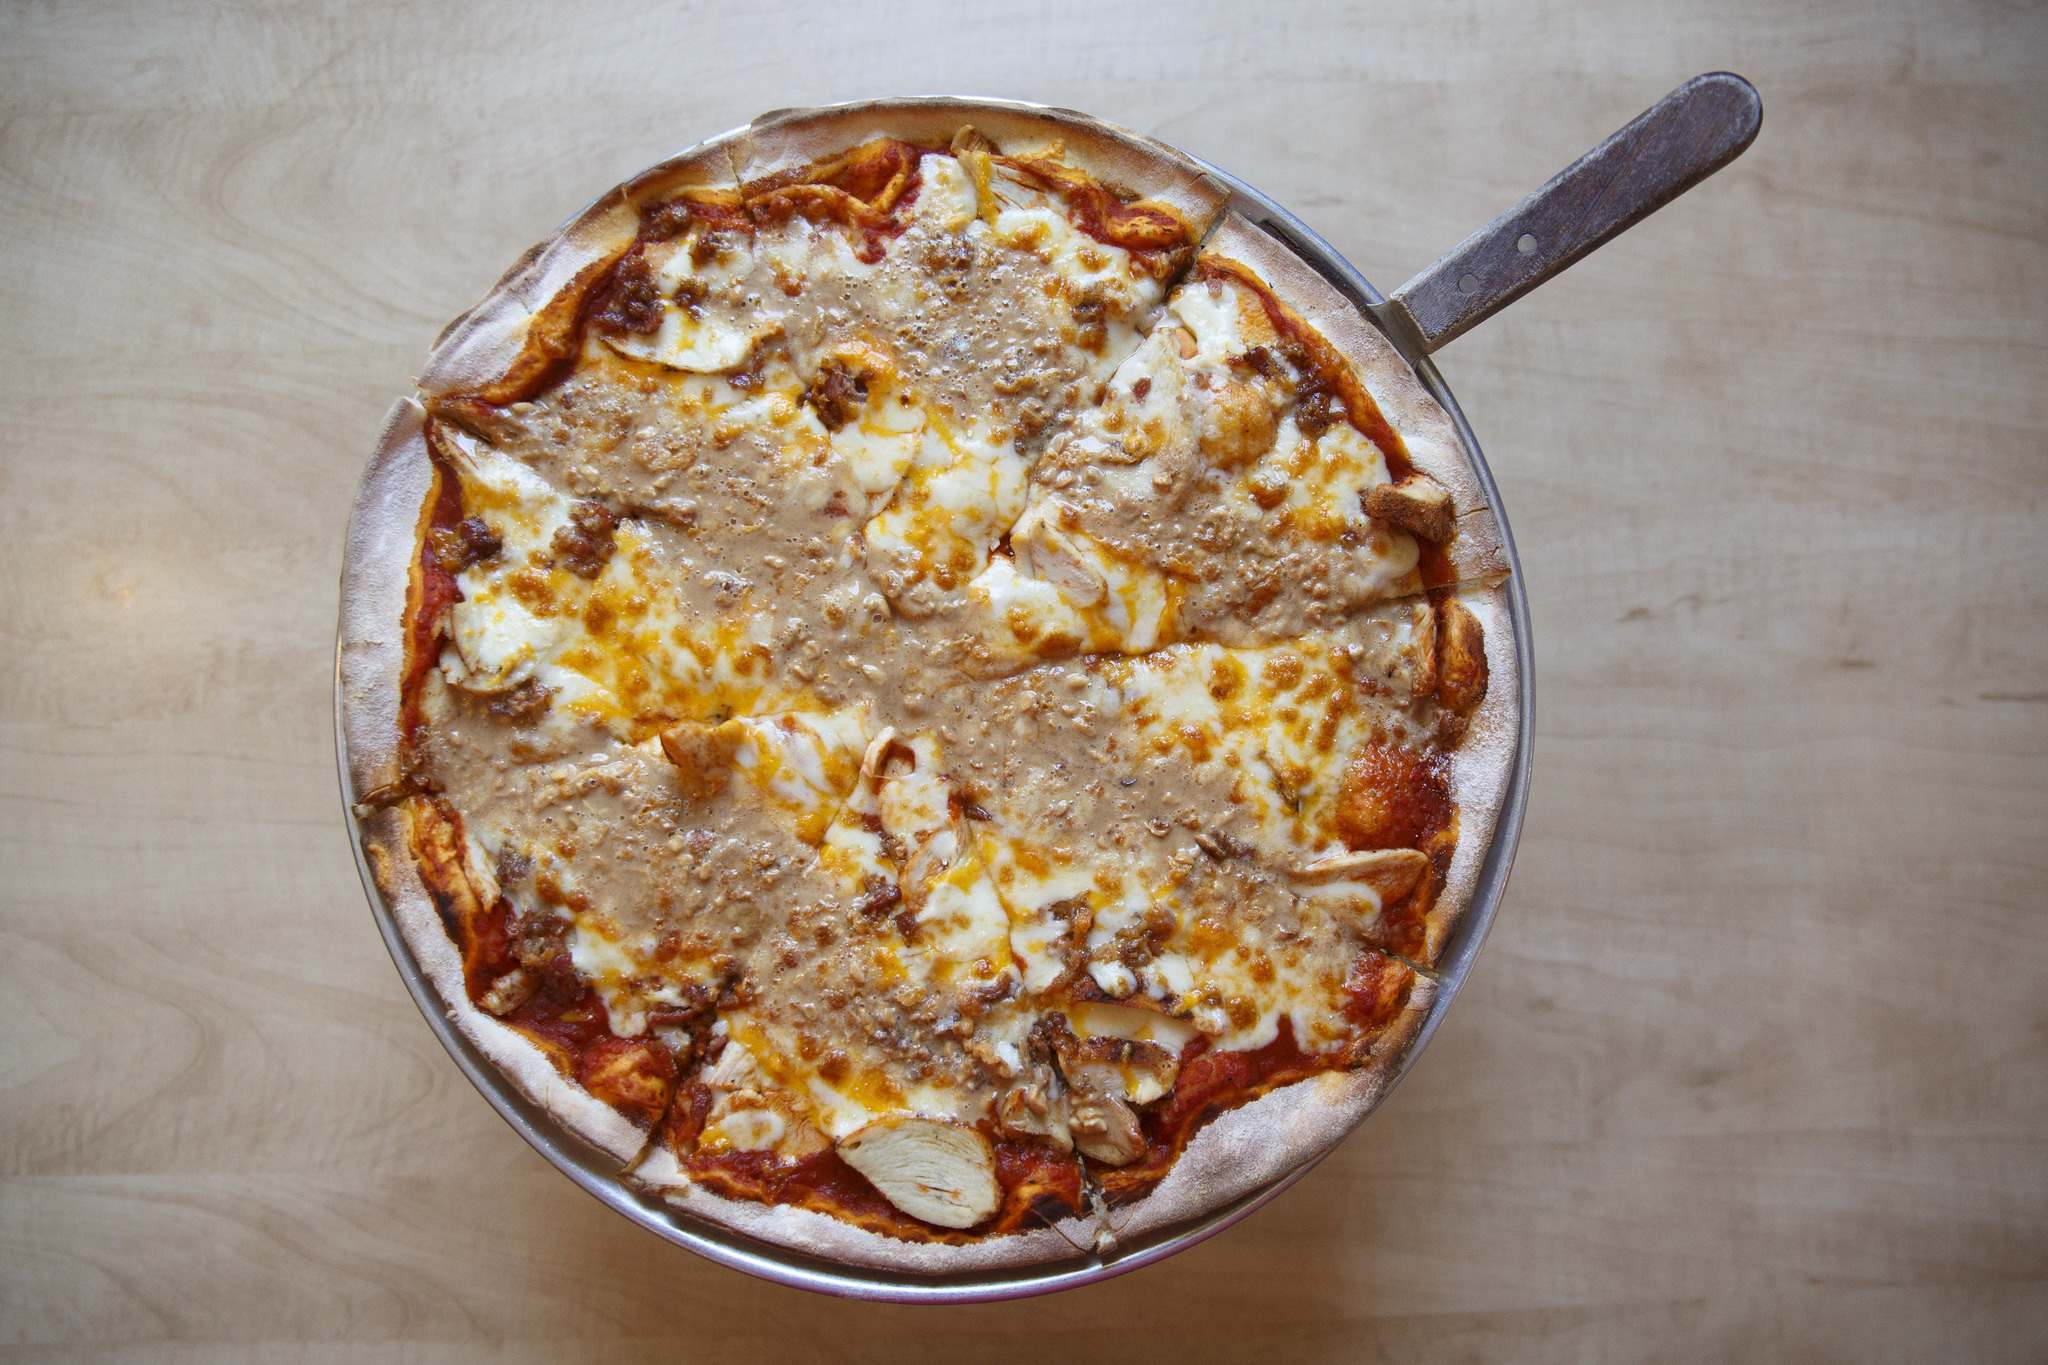 The Steve B pizza at Corrientes is described on the menu as topped with crunchie peanut butter, bacon, smoked cajun chicken breast, and mozzarella and cheddar cheeses on tomato sauce. (Mike Deal / Winnipeg Free Press)</p></p>